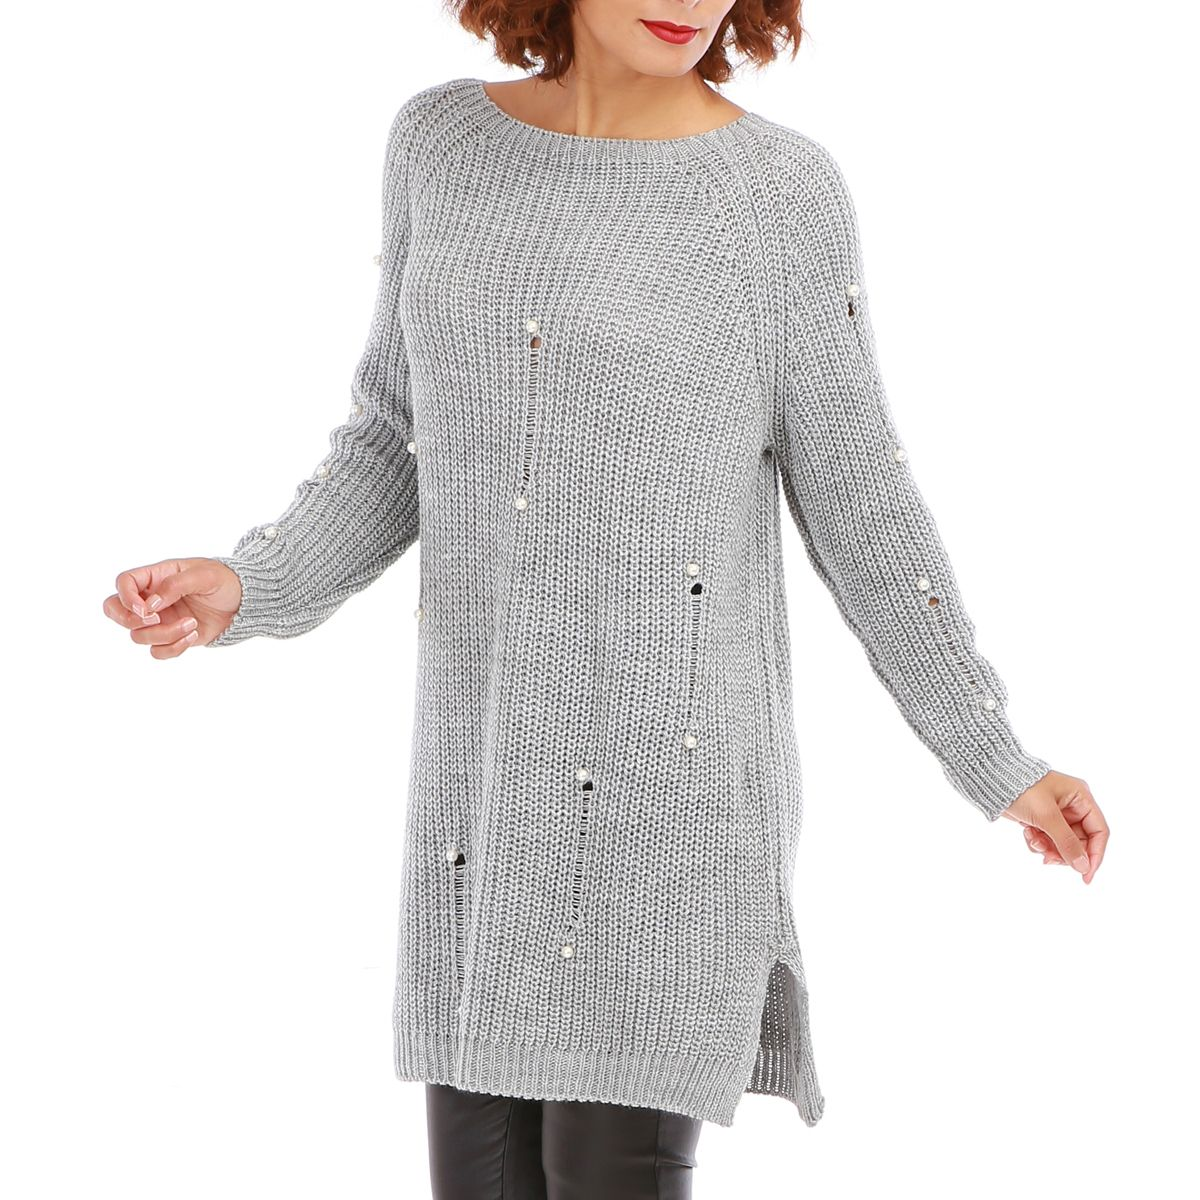 Robe pull d'hiver pas cher